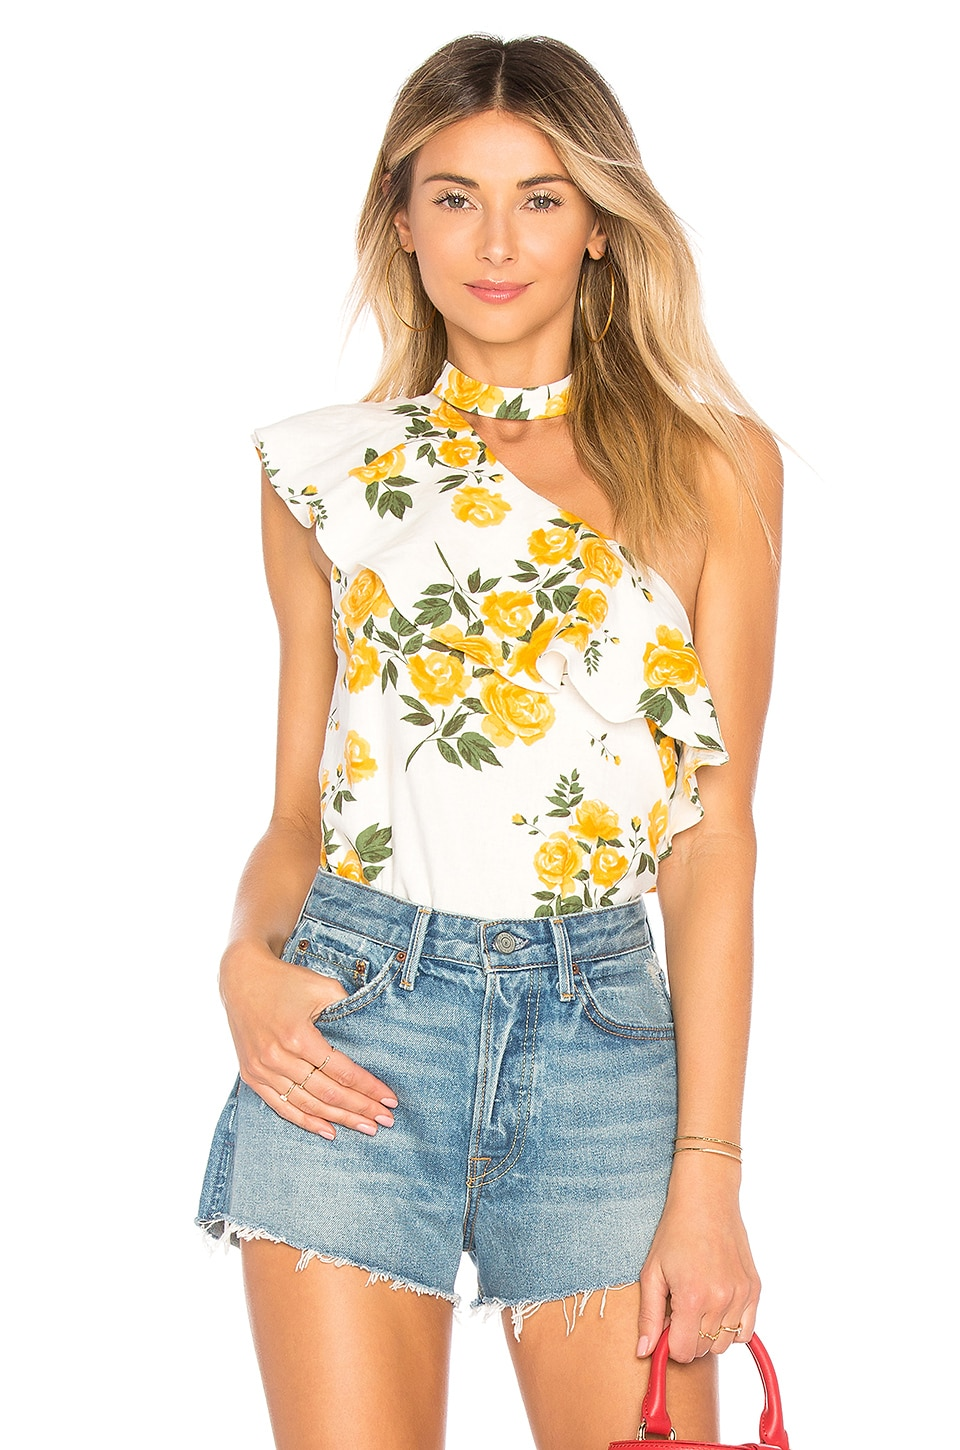 L'Academie The Seberg Top in Yellow Rose